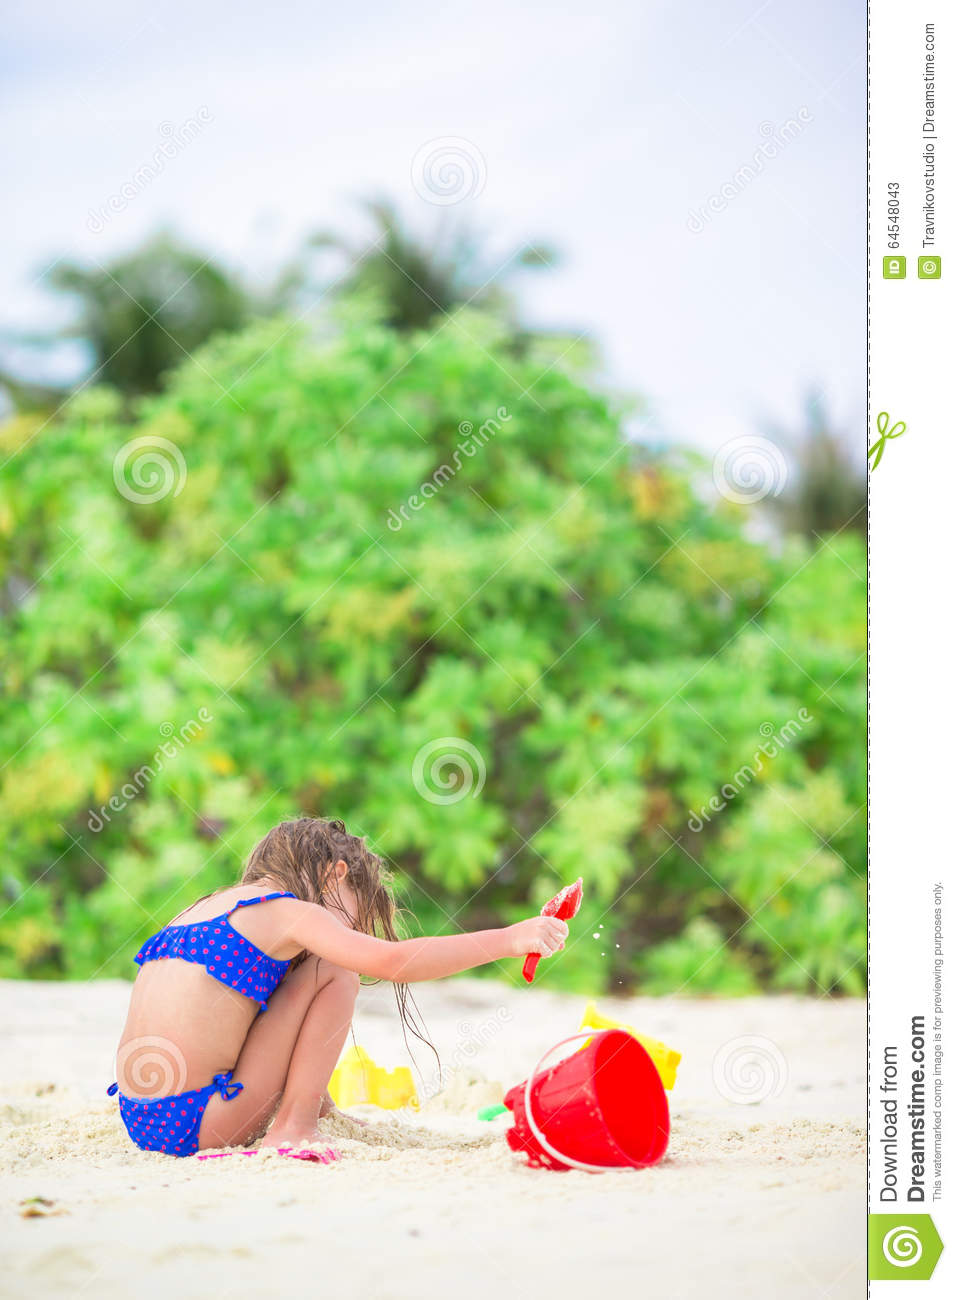 Beach Toys For Girls : Adorable little girl playing with beach toys stock photo